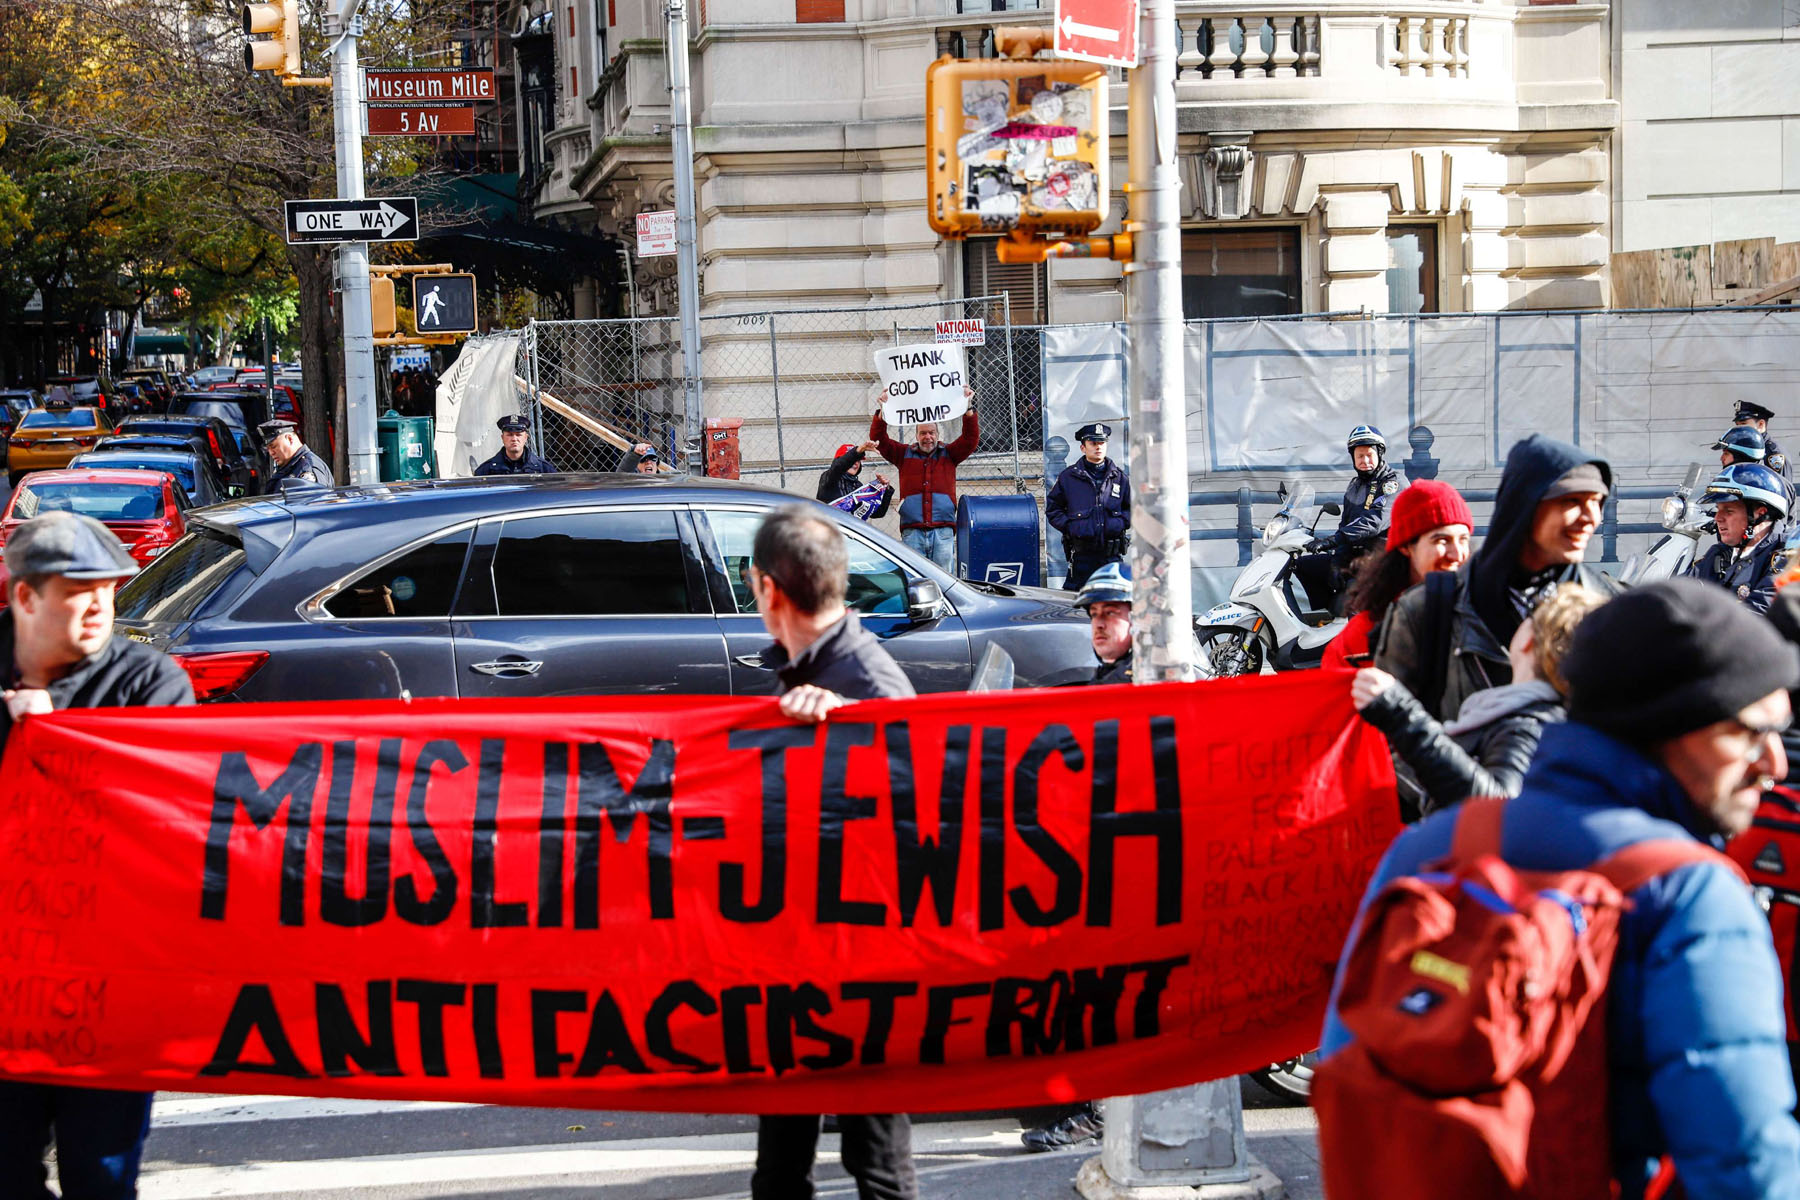 People hold banners and placards during a protest against fascism and anti-Semitism in New York, on November 10.  (William Volcov)